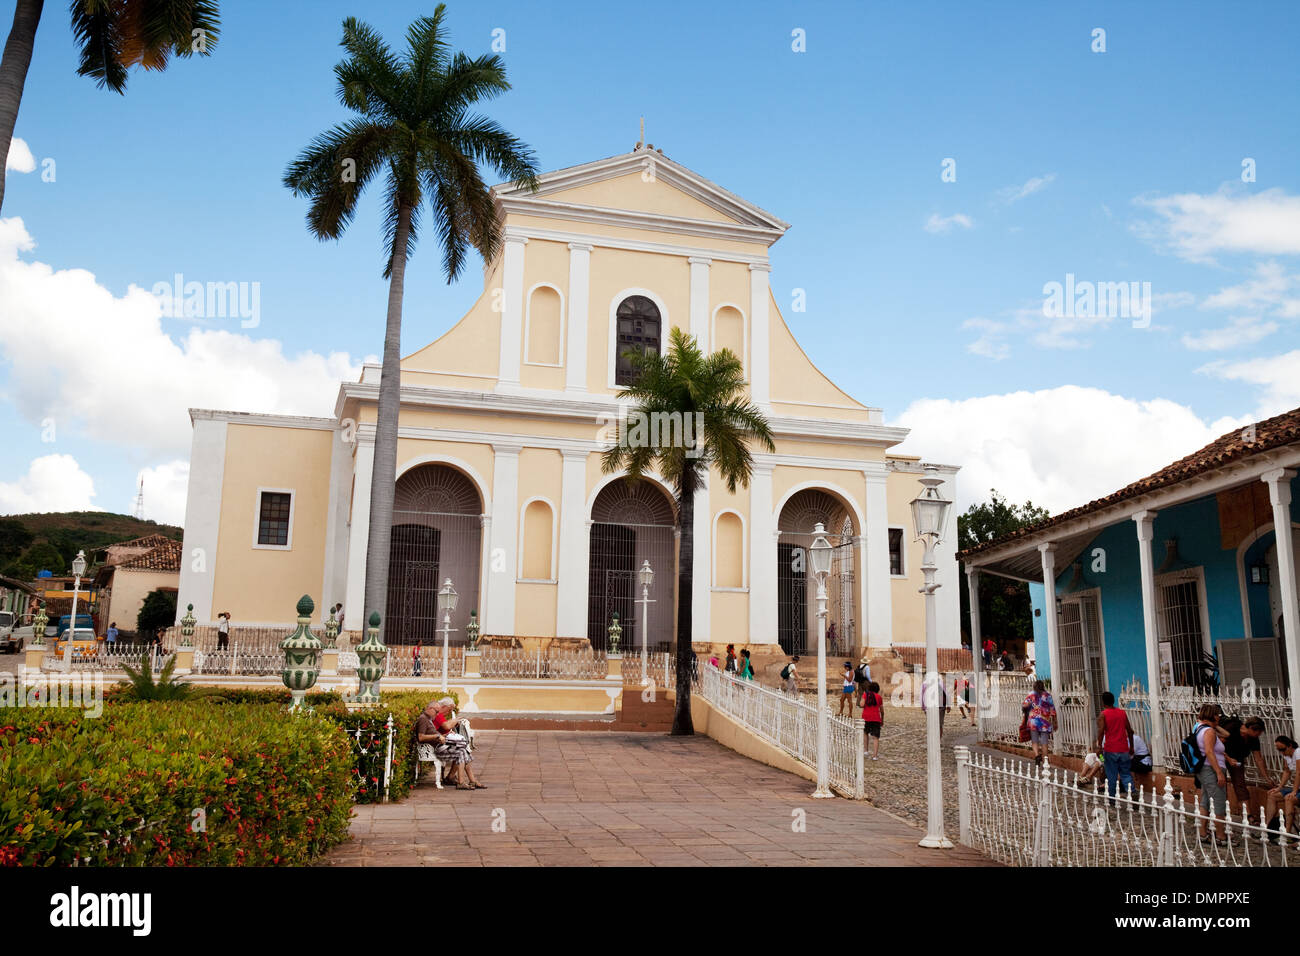 The Church of the Holy Trinity, Plaza Mayor, Trinidad town centre, UNESCO world heritage site, Cuba, Caribbean Latin America - Stock Image